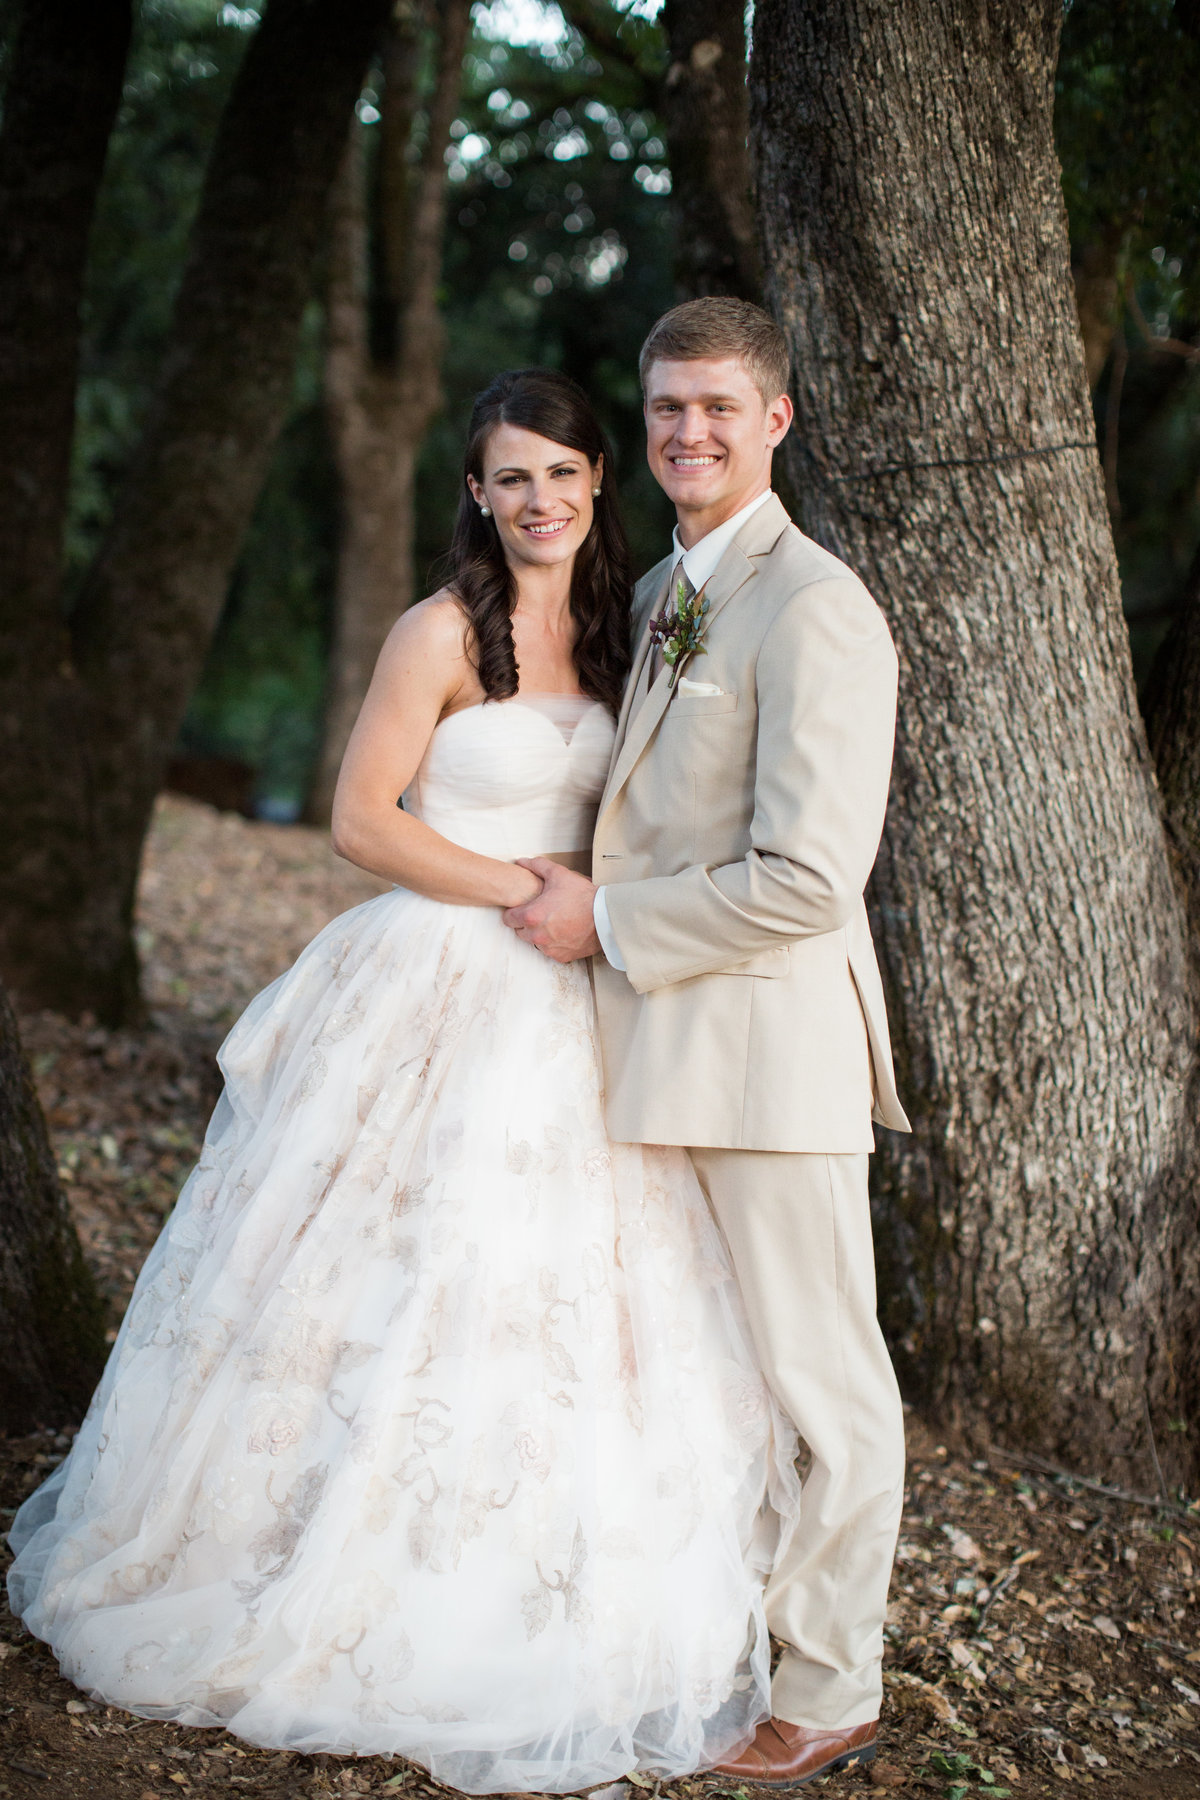 david-sarah-wedding-evangeline-renee-photo-3005